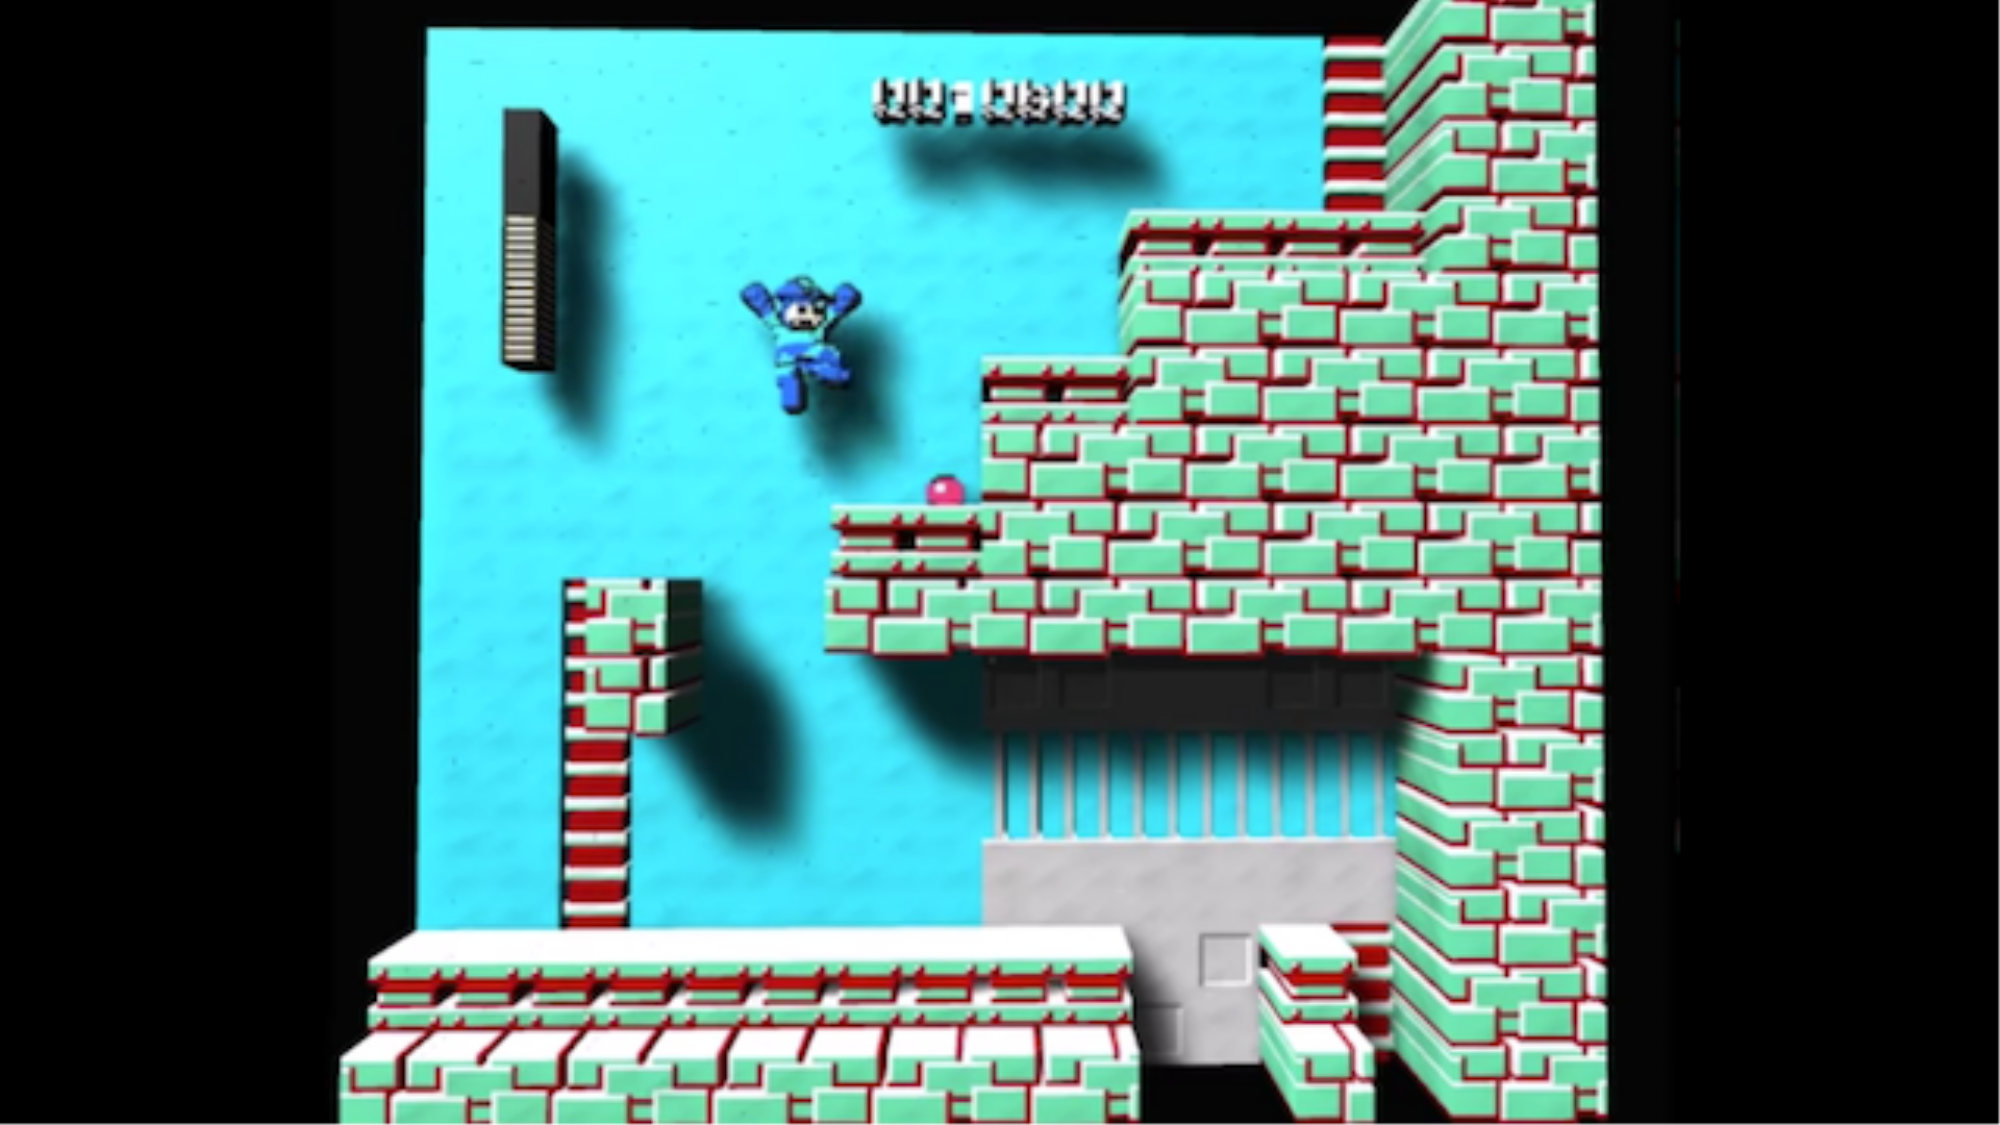 A New Emulator Turns Classic Nintendo Games into 3D - VICE